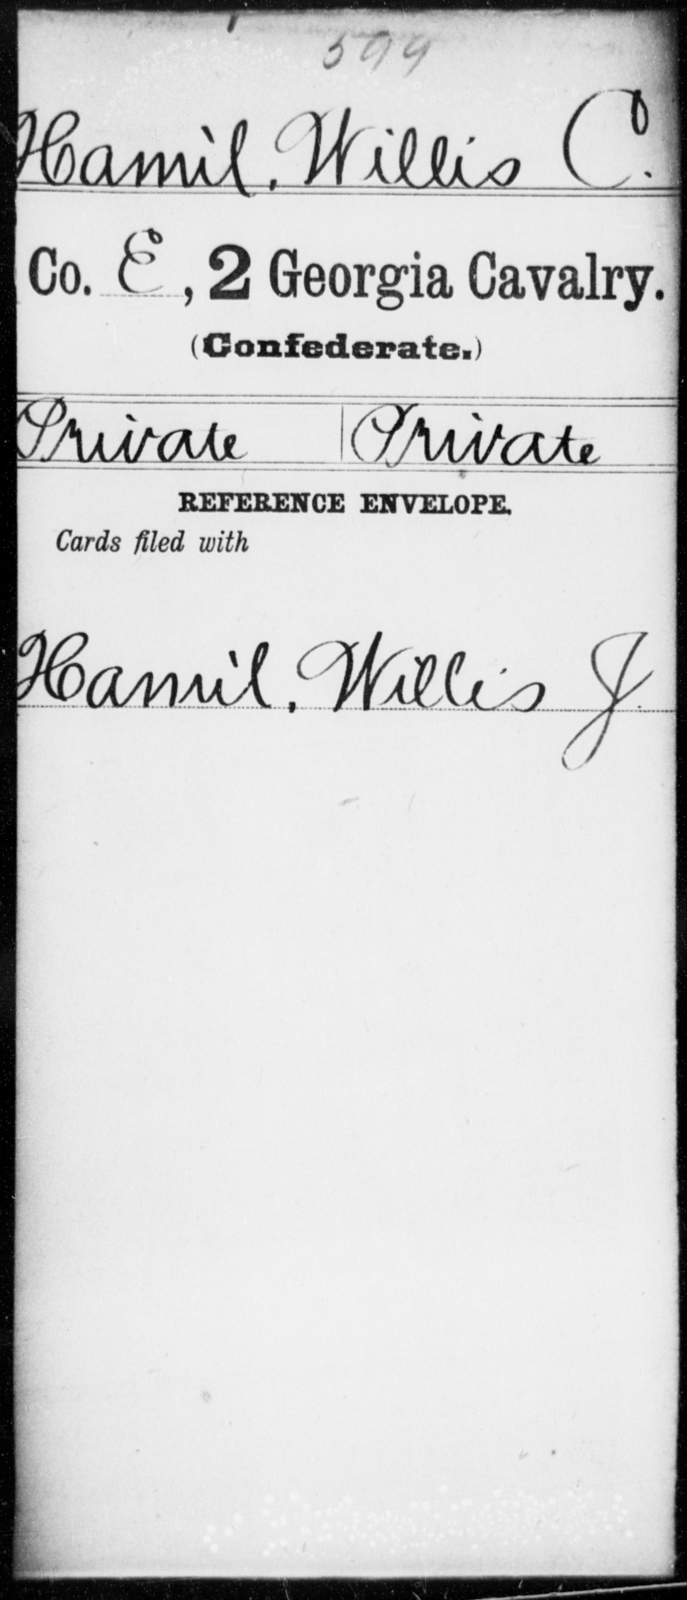 Hamil, Willis C - 2d Georgia Cavalry